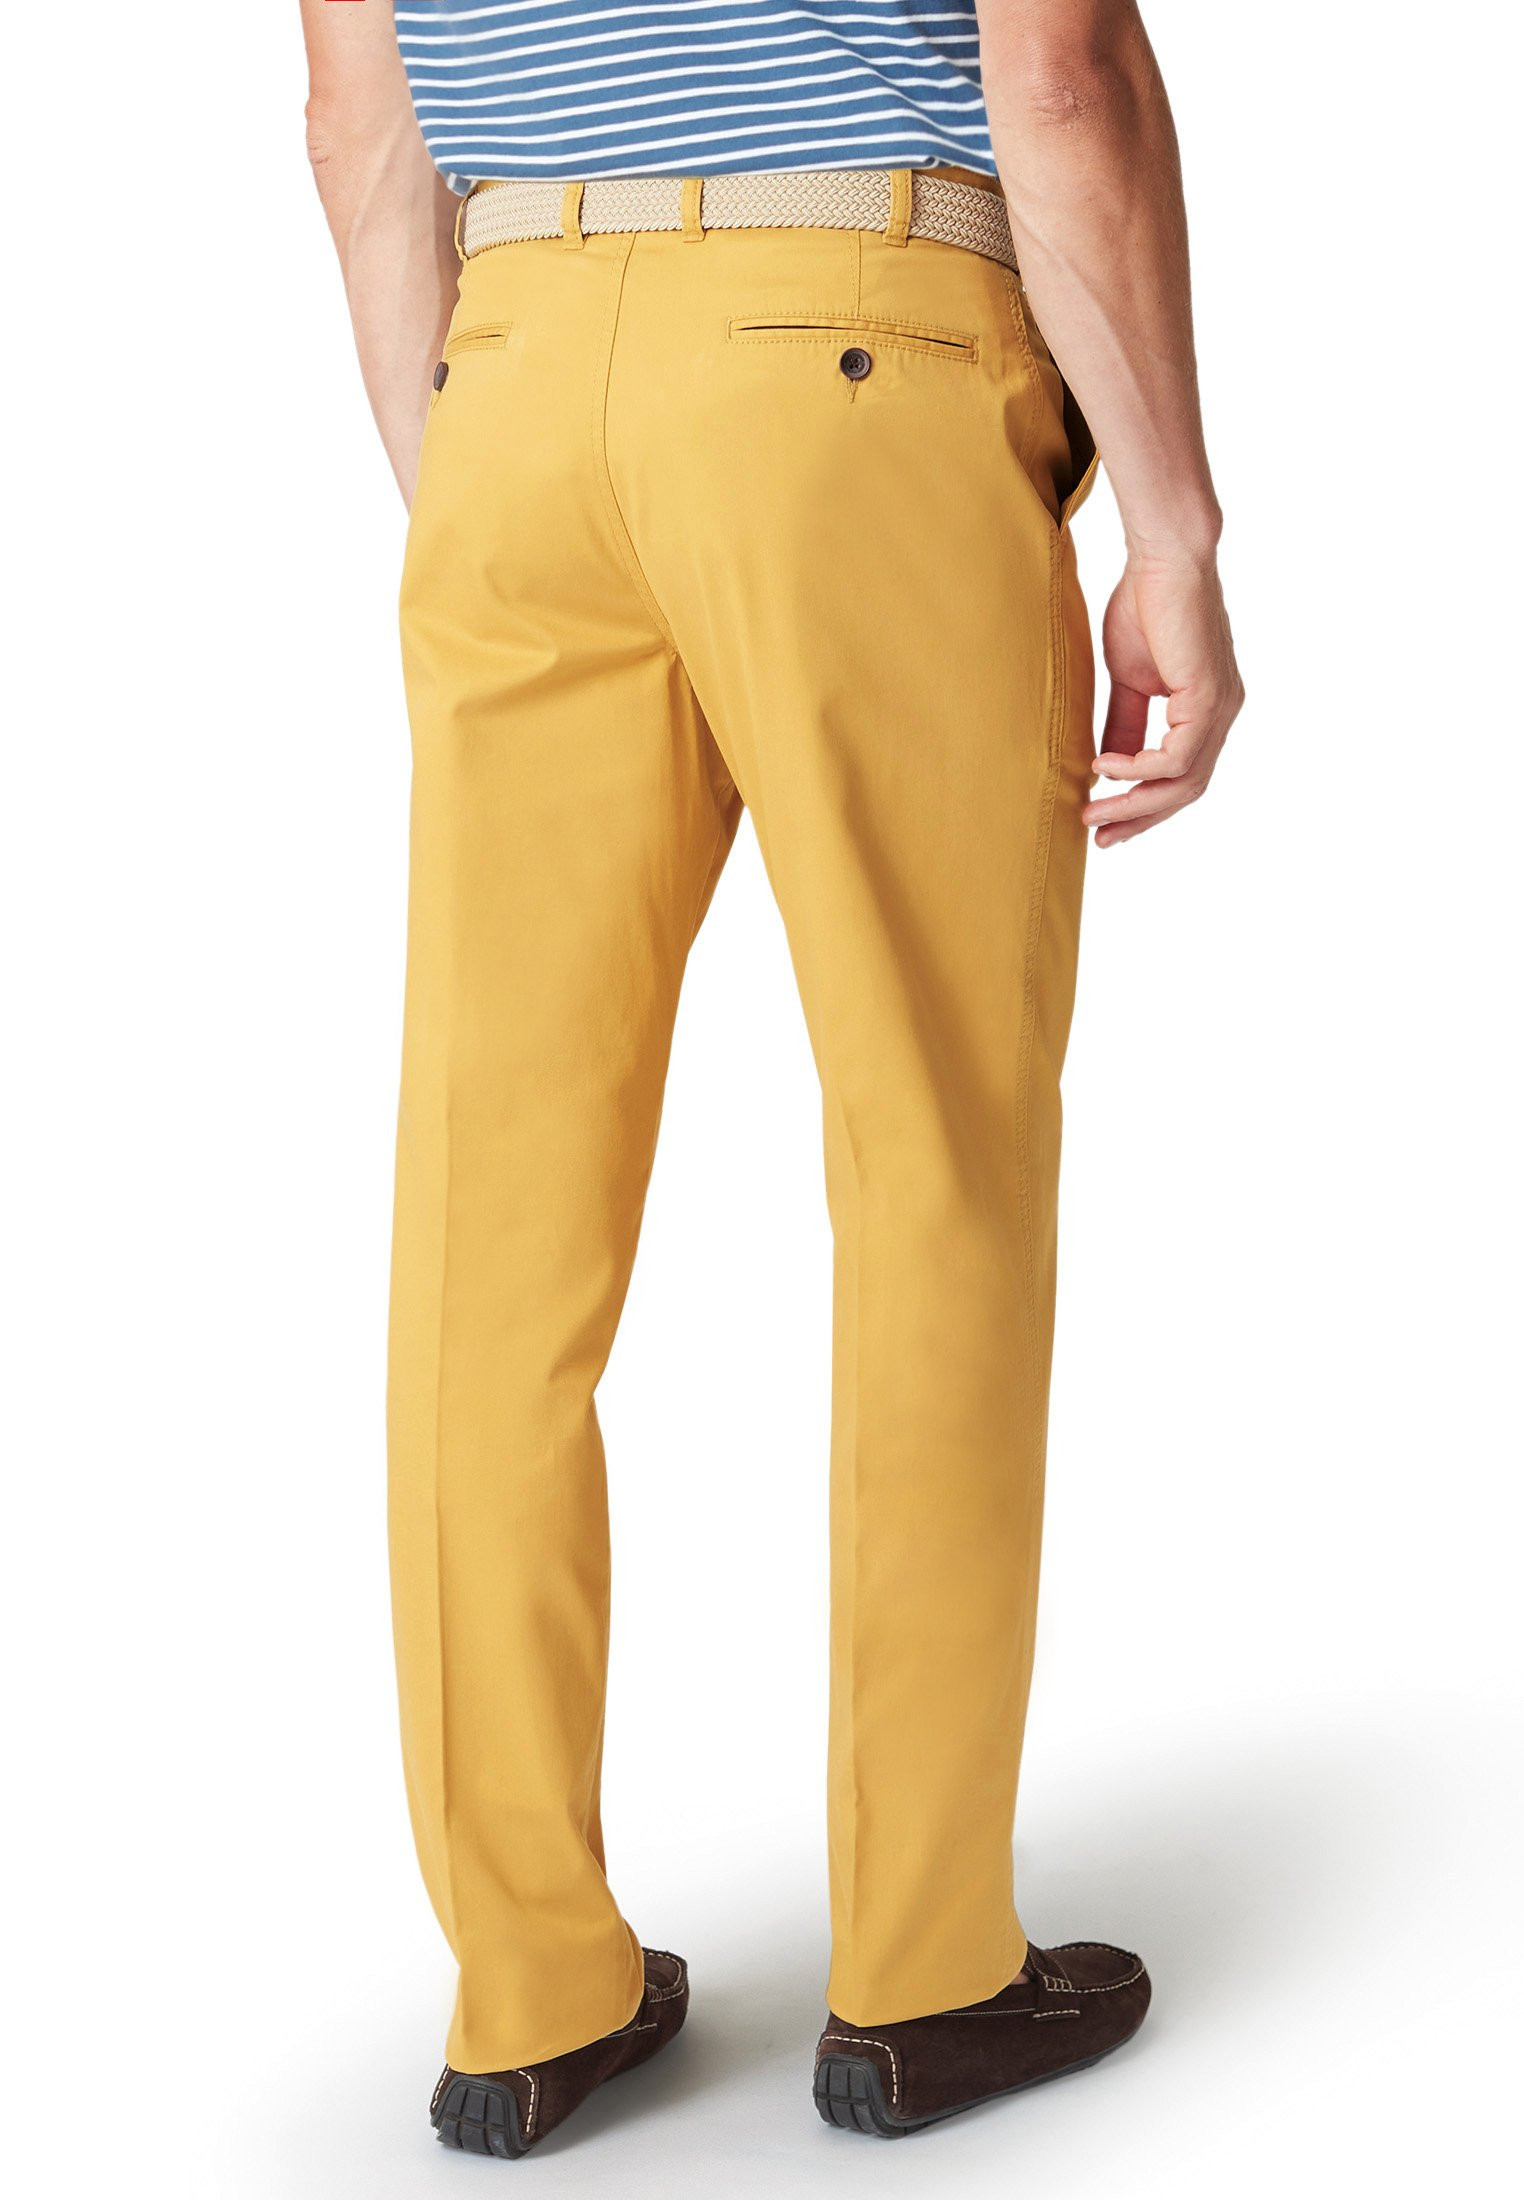 Ribblesdale Corn Tailored Fit Cotton Stretch Summer Trouser